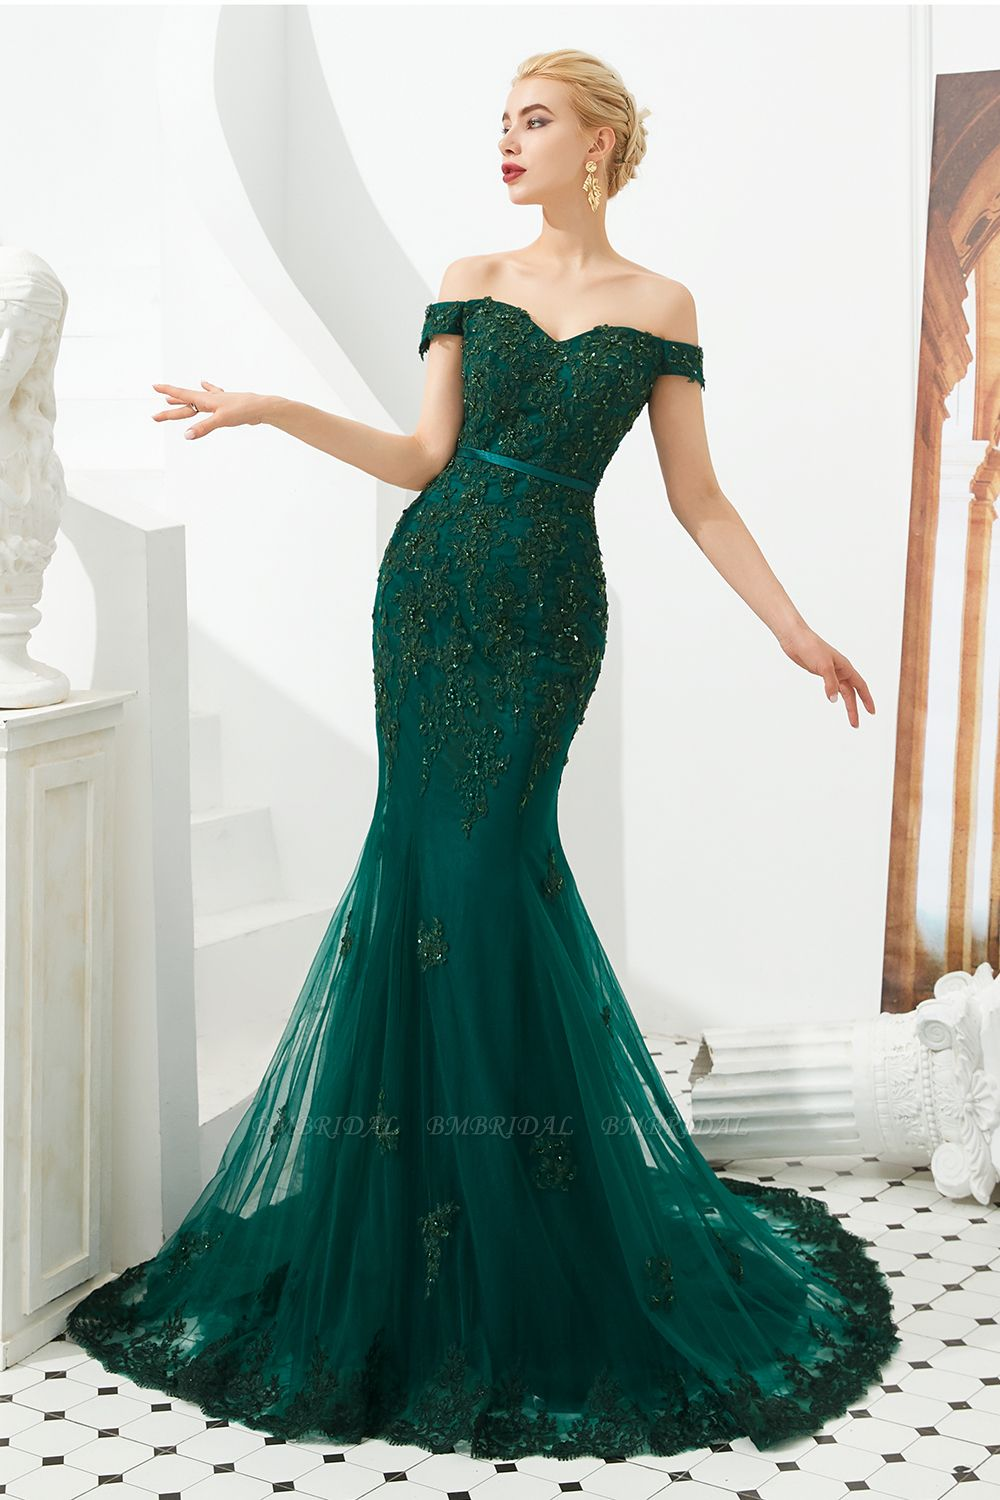 BMbridal Off-the-Shoulder Green Prom Dress Long Mermaid Evening Gowns With Lace Appliques